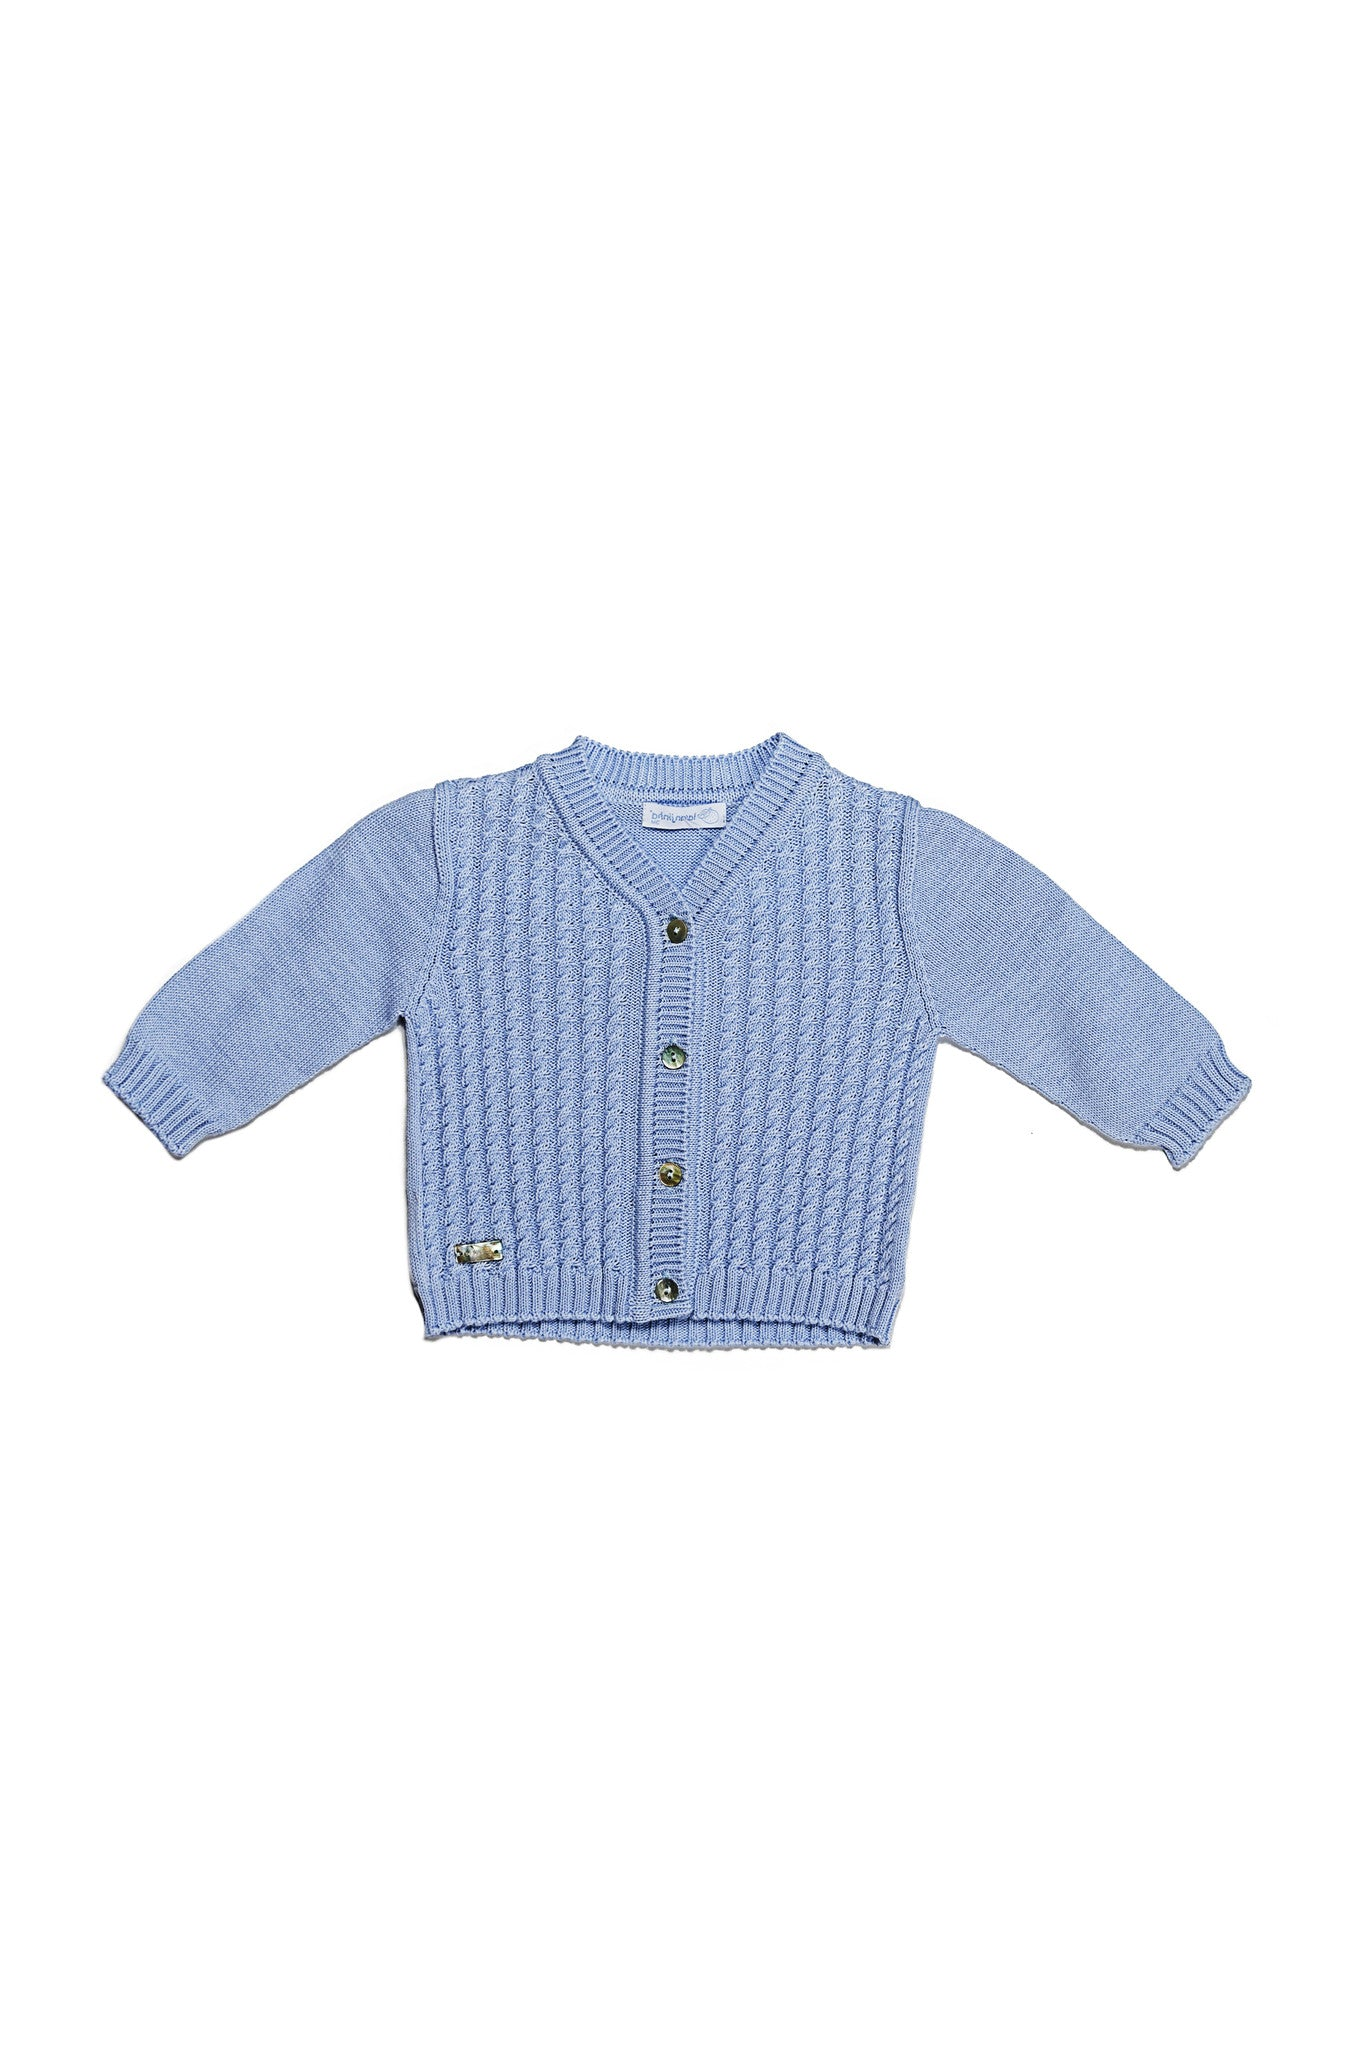 Laranjinha - Sky Blue Cable Knit Cardigan